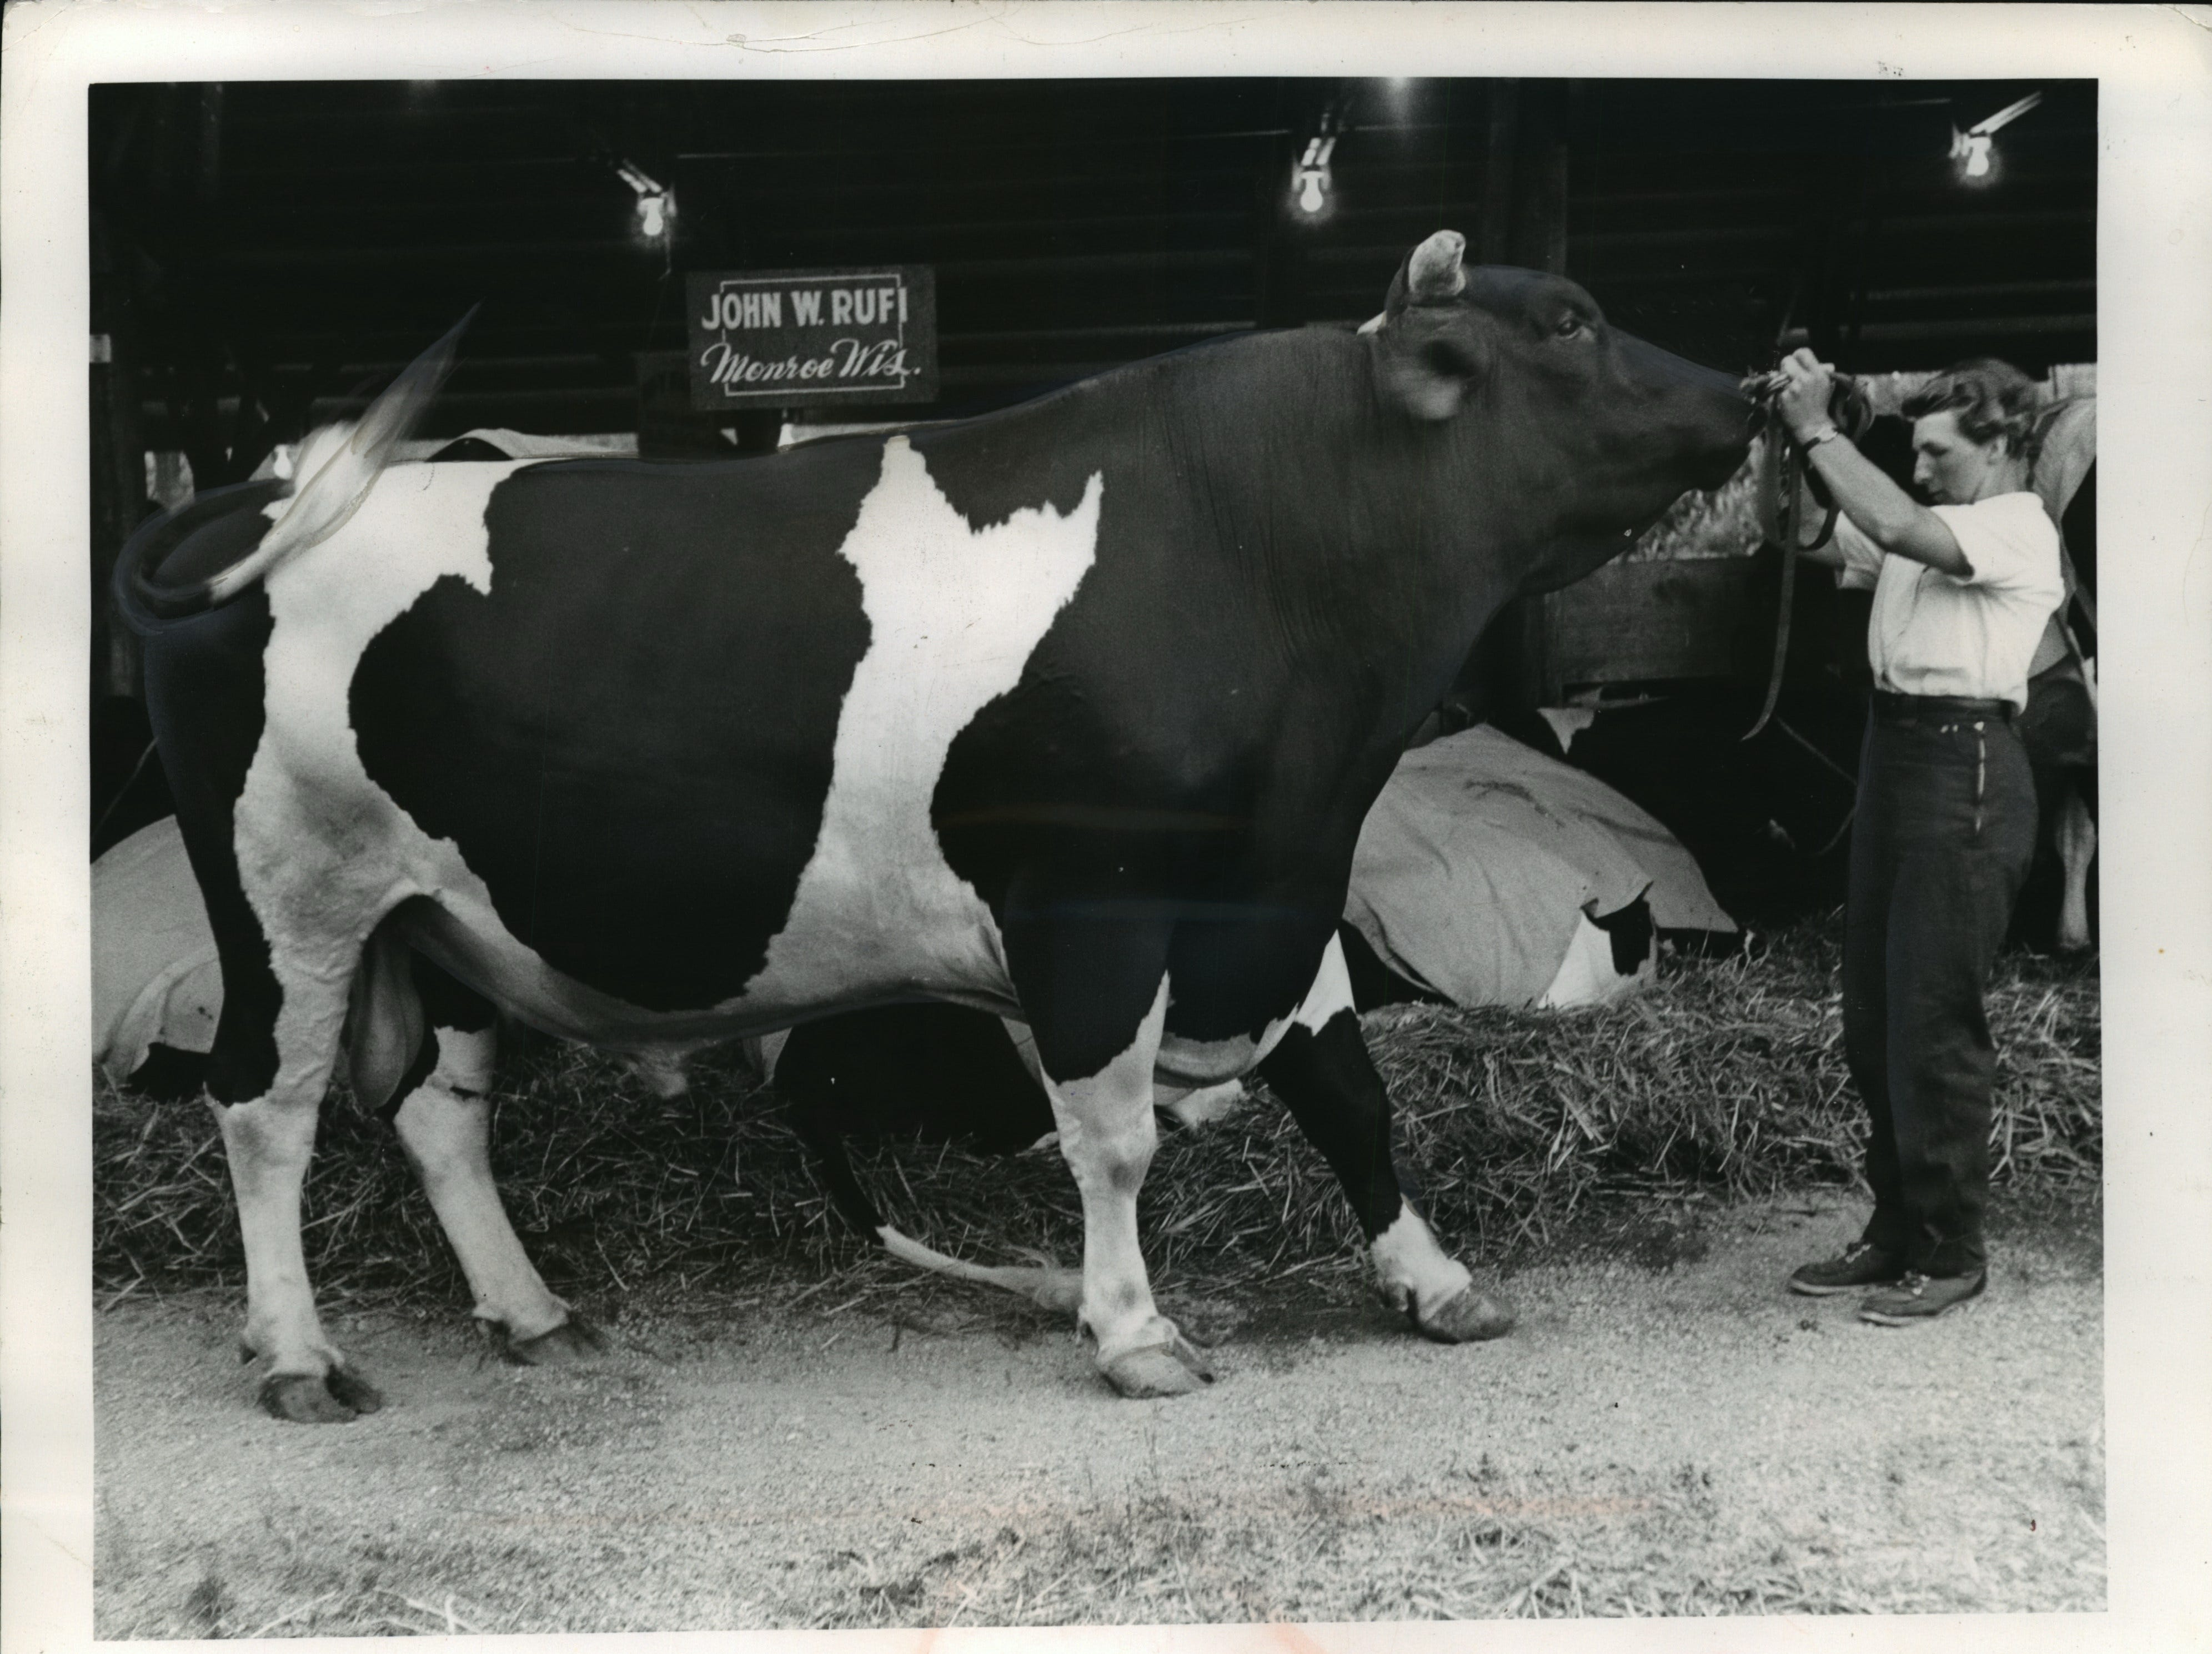 A Monroe girl, Frances Rufi, who weighs 100 lb., led a 2,500 lb. Holstein bull through its paces for judging at a series of county fairs. The bull, Carnation Butterboy Halo, a 4 year old, repeated as grand champion of the Lafayette county fair at Darlington and is entered in the Green county fair this week at Monroe.